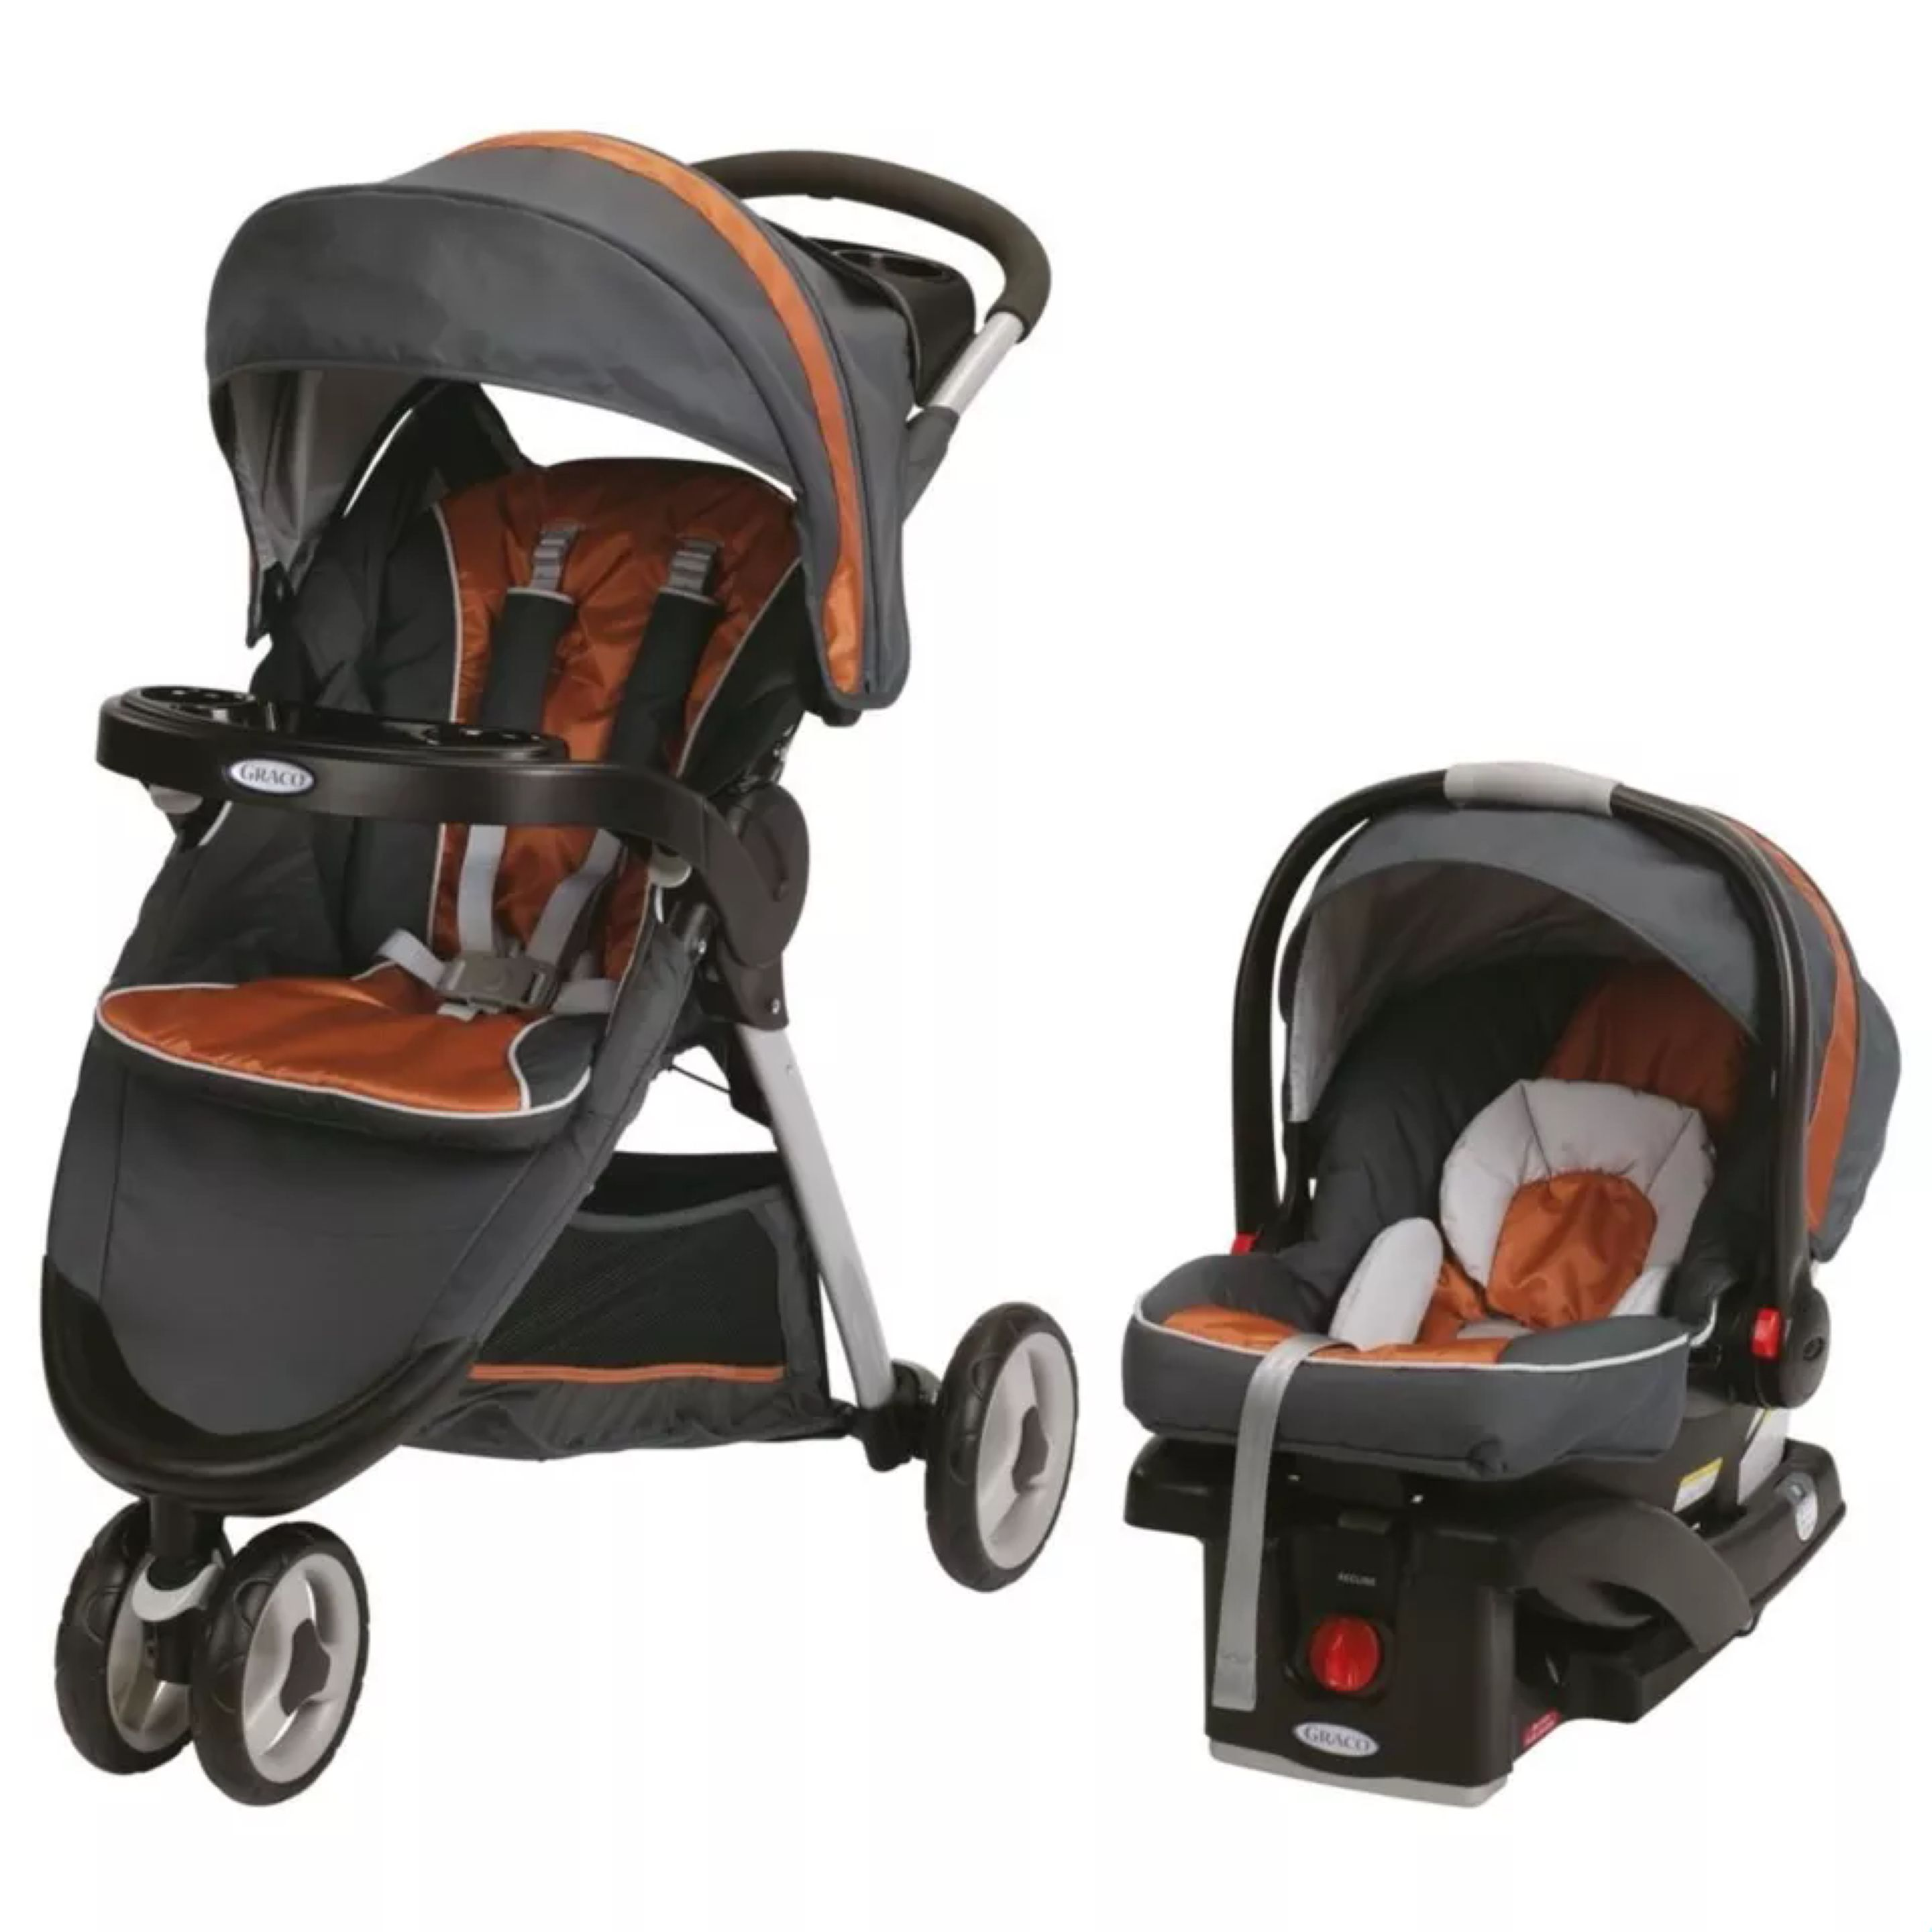 Pin by Staten on Baby Gear Travel systems for baby, Best